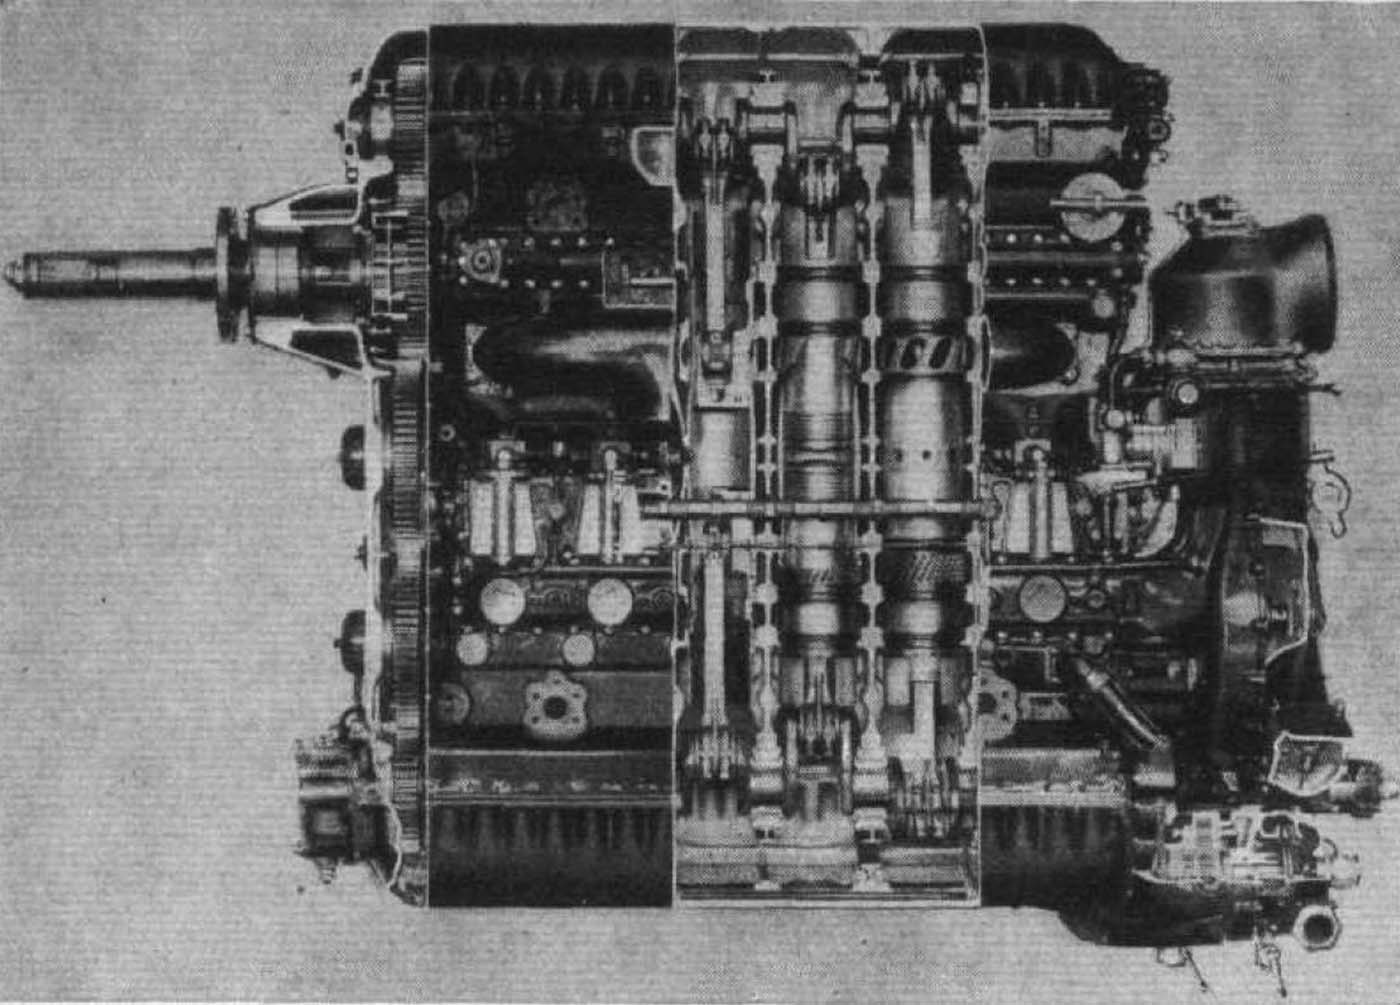 Junkers Jumo engine